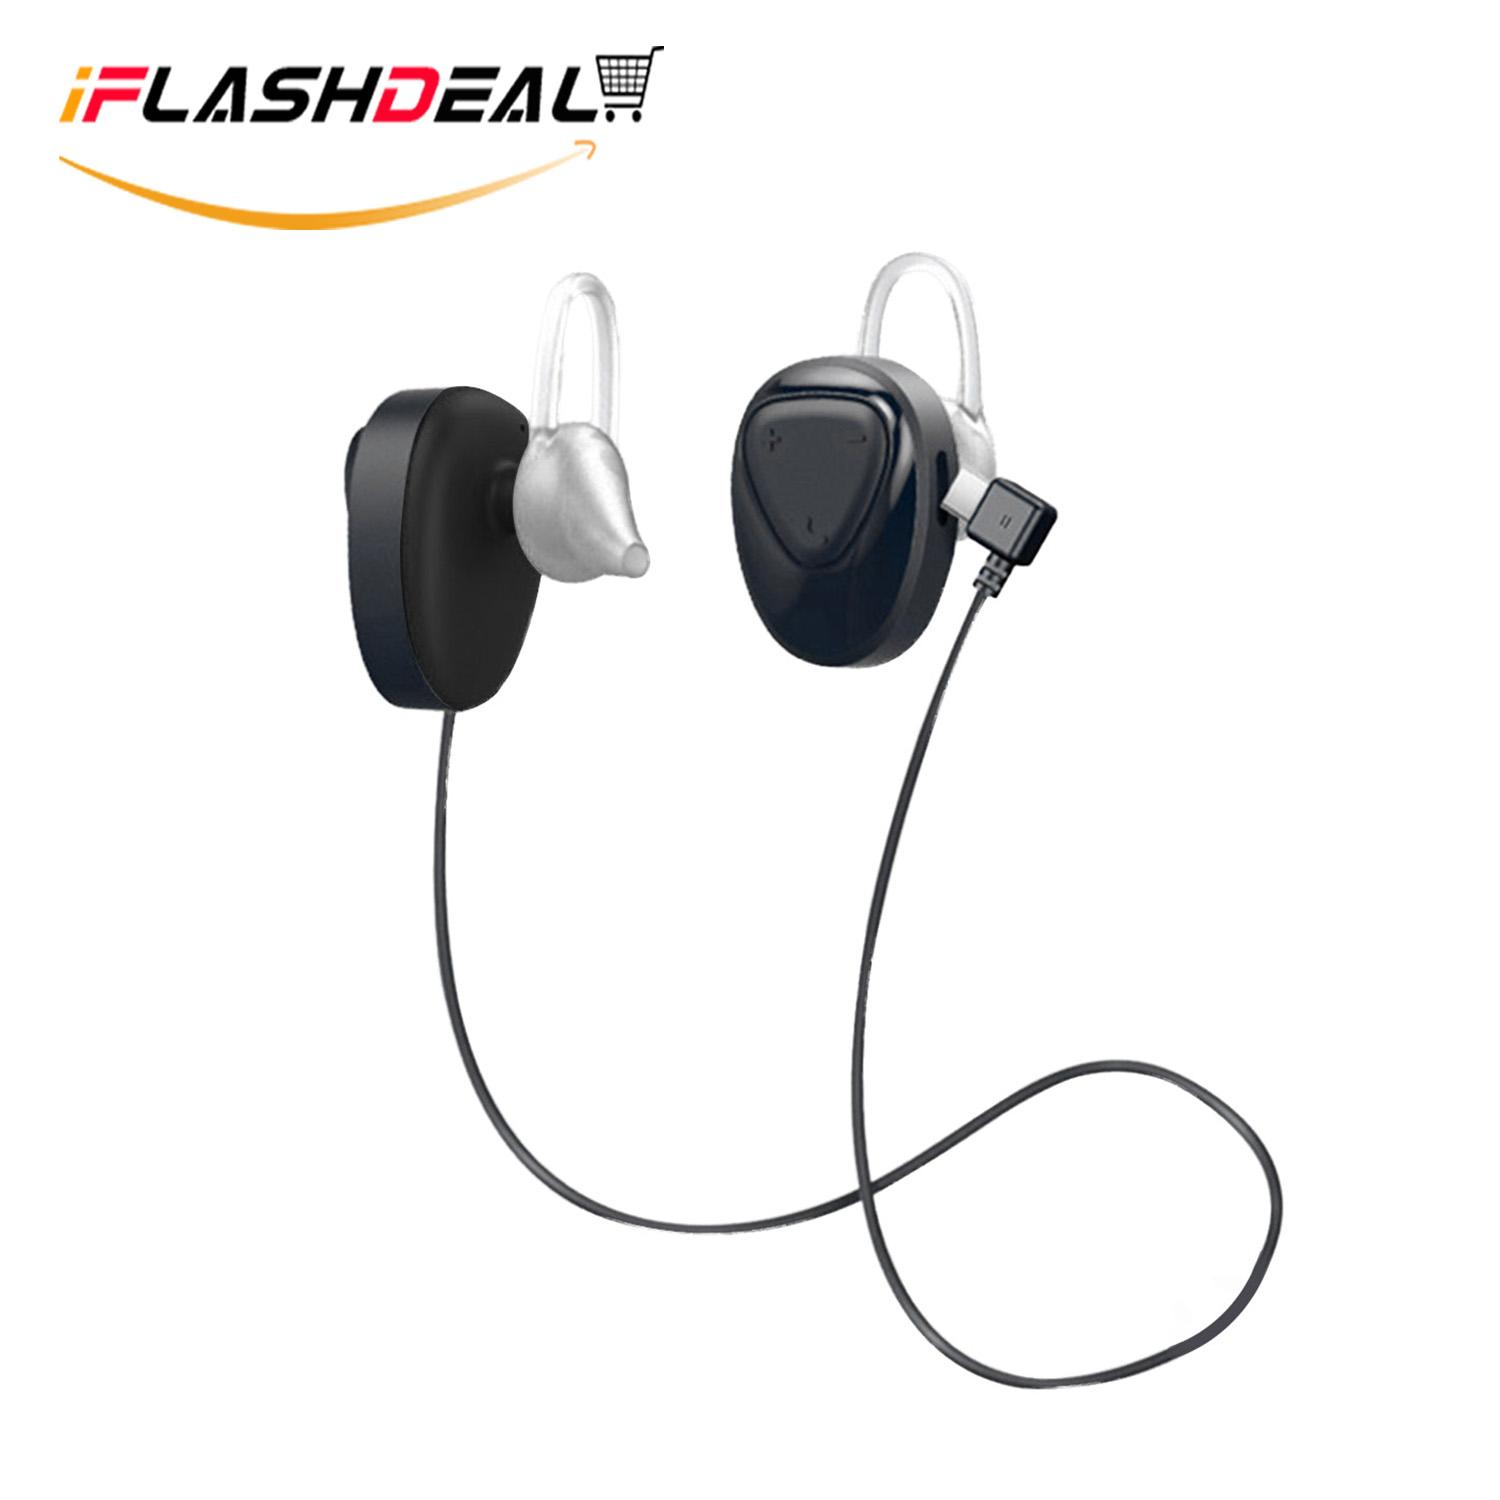 Harga Jual Philips Ear Phone With Mic Hitam Update 2018 In Earphone She3905 Gd Gold Wireless Earbuds Buy At Best Price Malaysia Iflashdeal Bluetooth